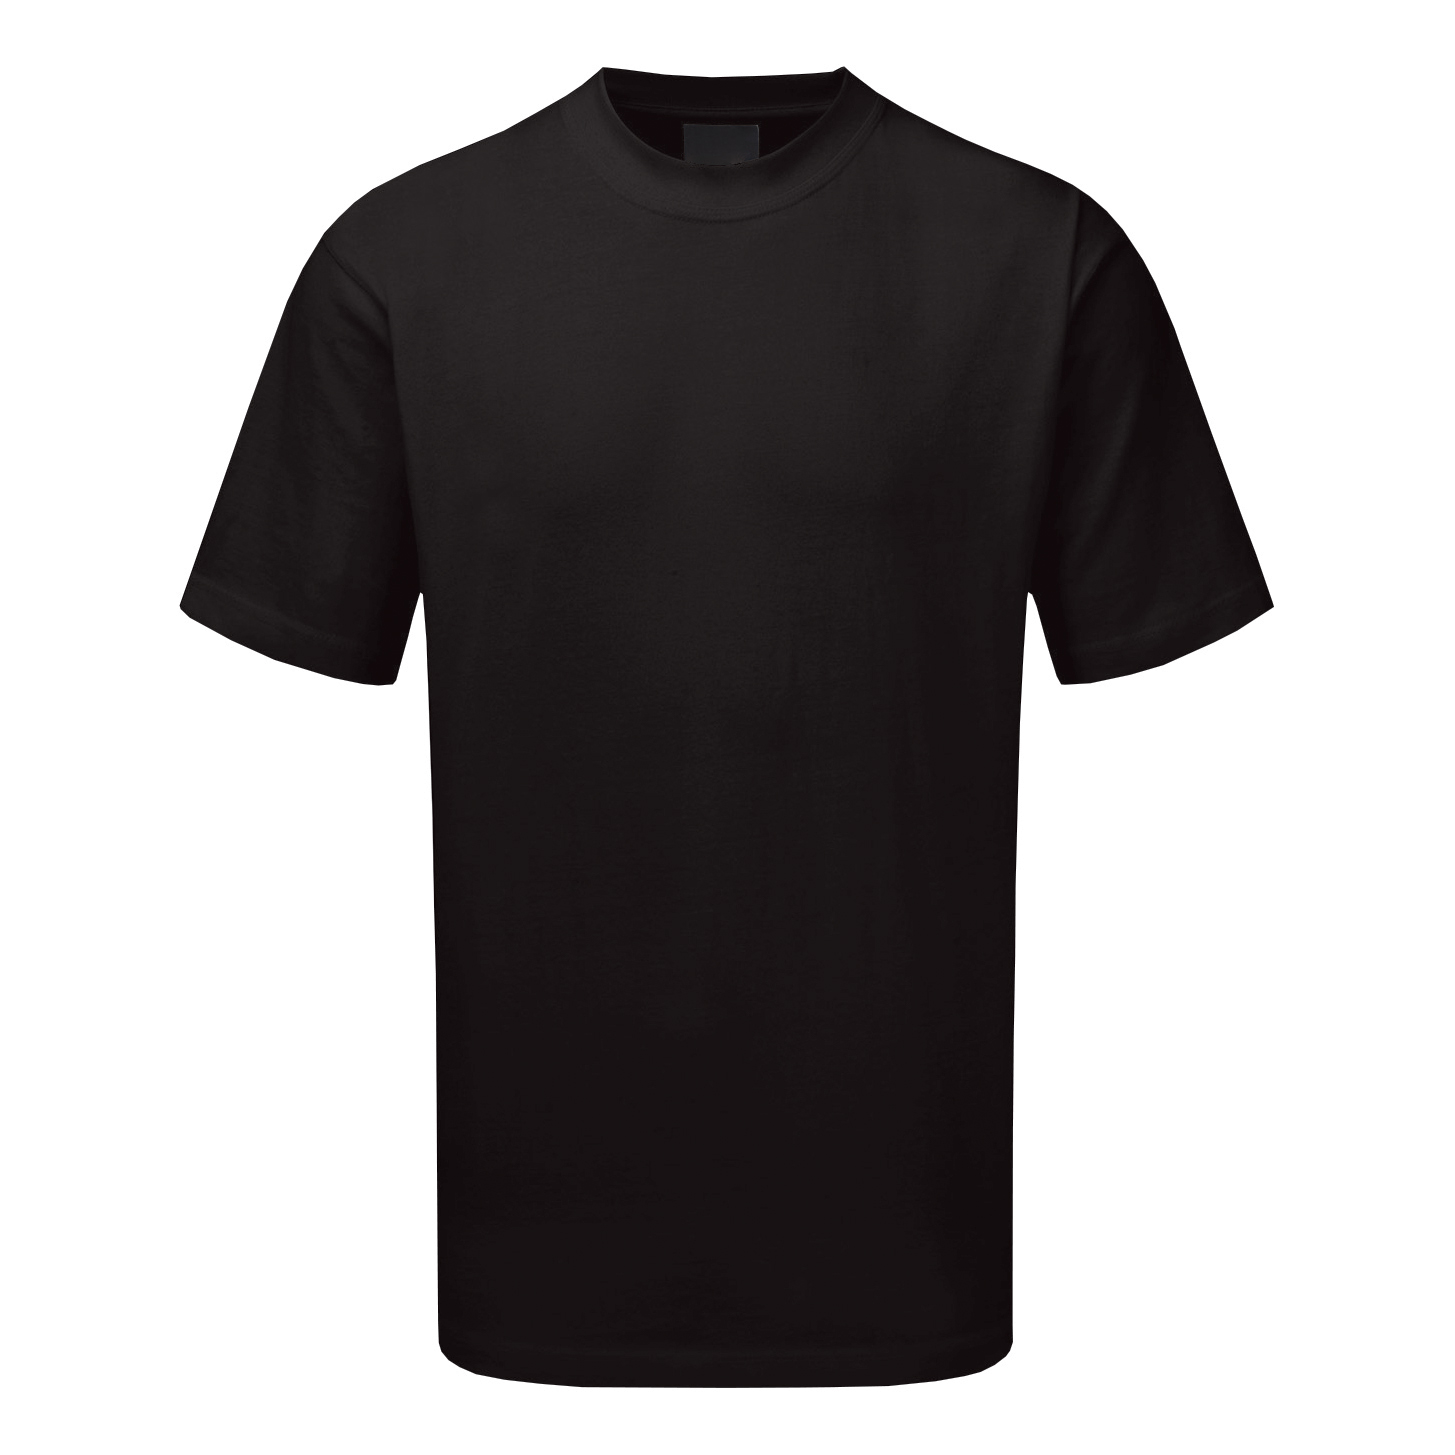 Premium T-Shirt Polycotton Triple Stitched Size XS Black Ref CLCTSHWBLXS *Up to 3 Day Leadtime*